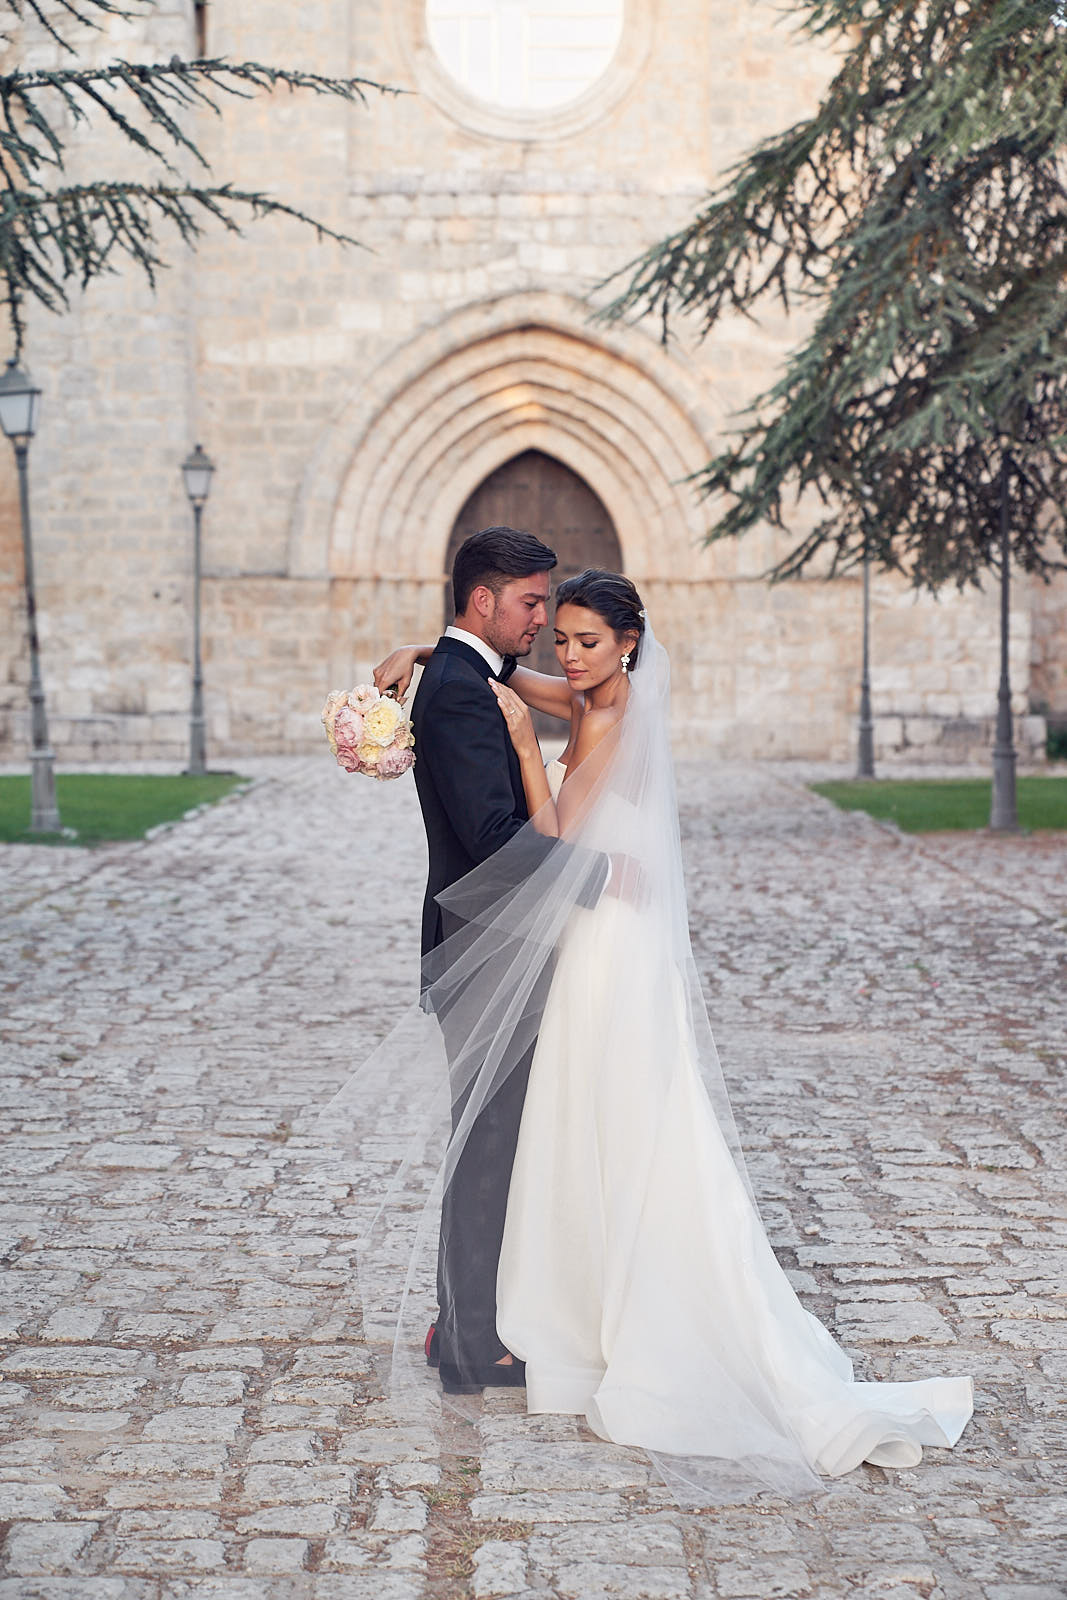 Castilla Monasterio Wedding Photos Spain by Los tIn Love Photography